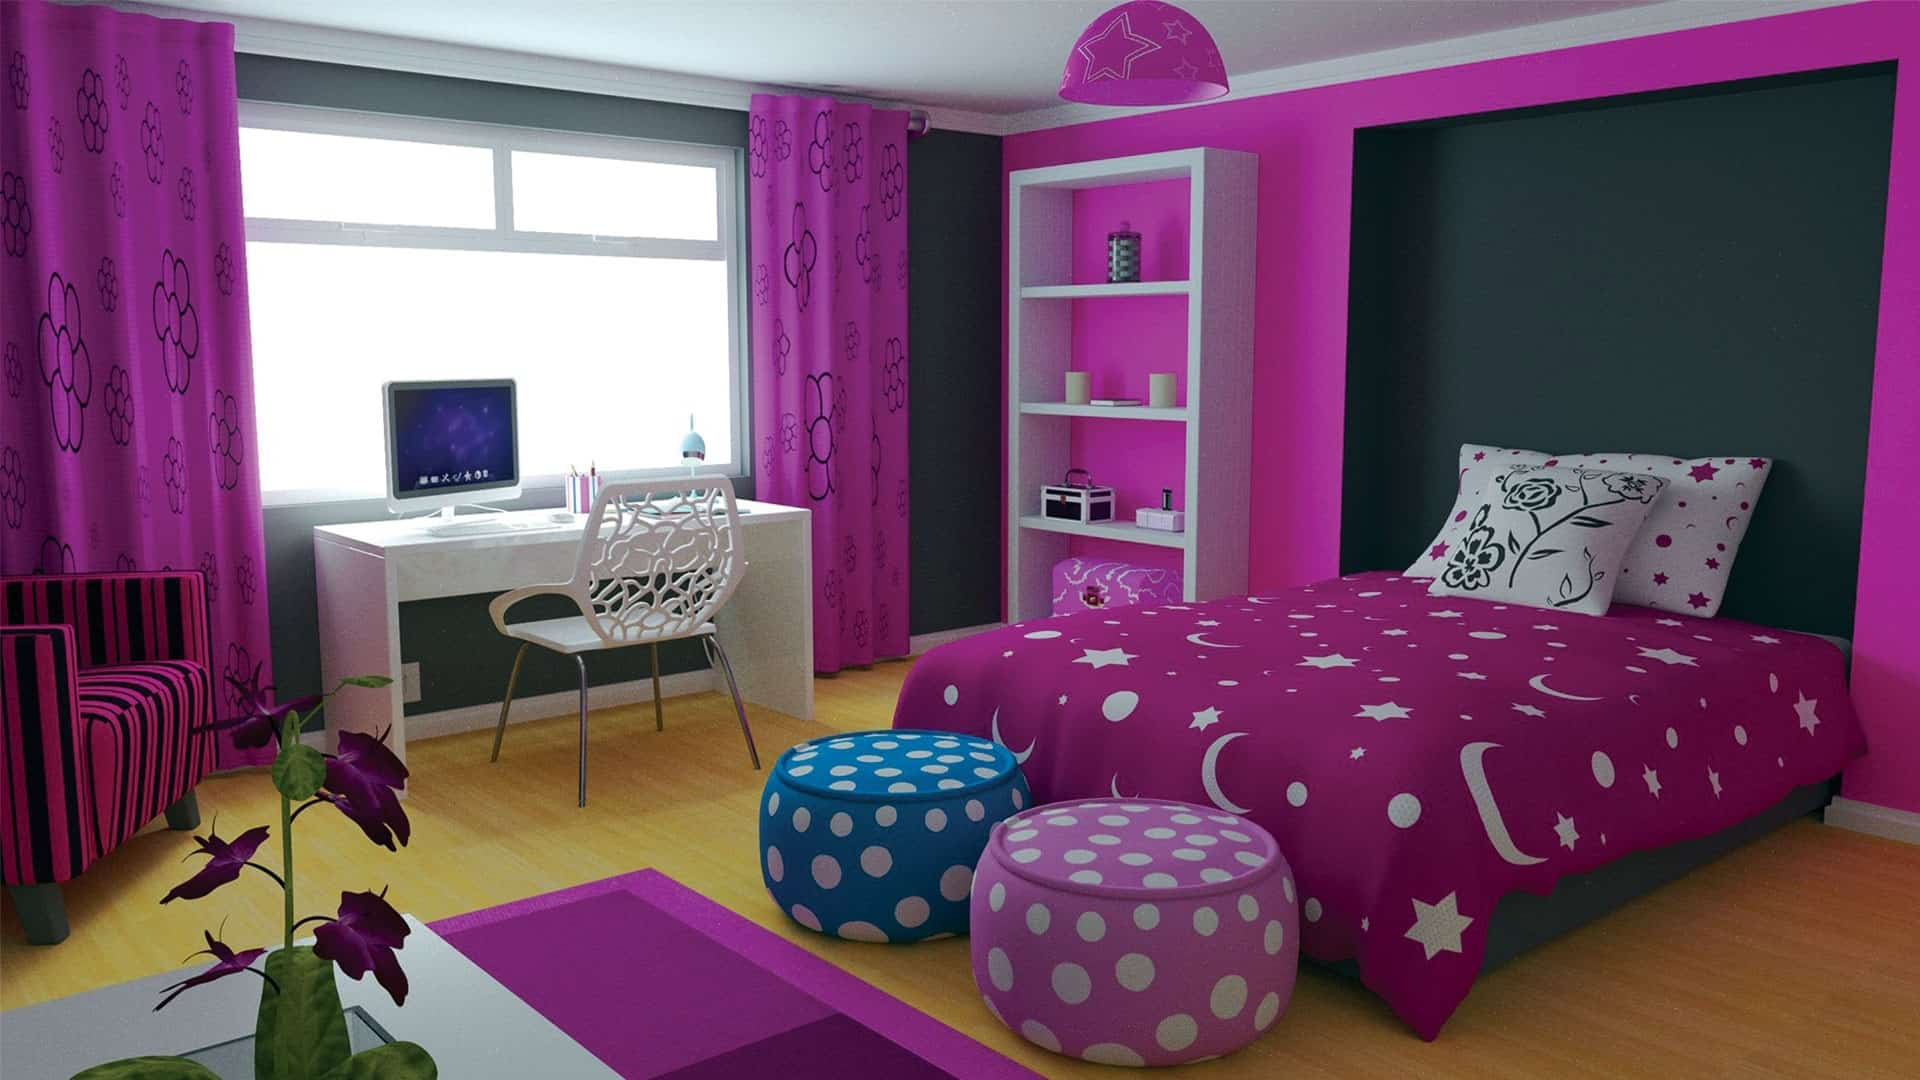 Home decor trends 2017 purple teen room house interior for Interior designs for bedrooms ideas